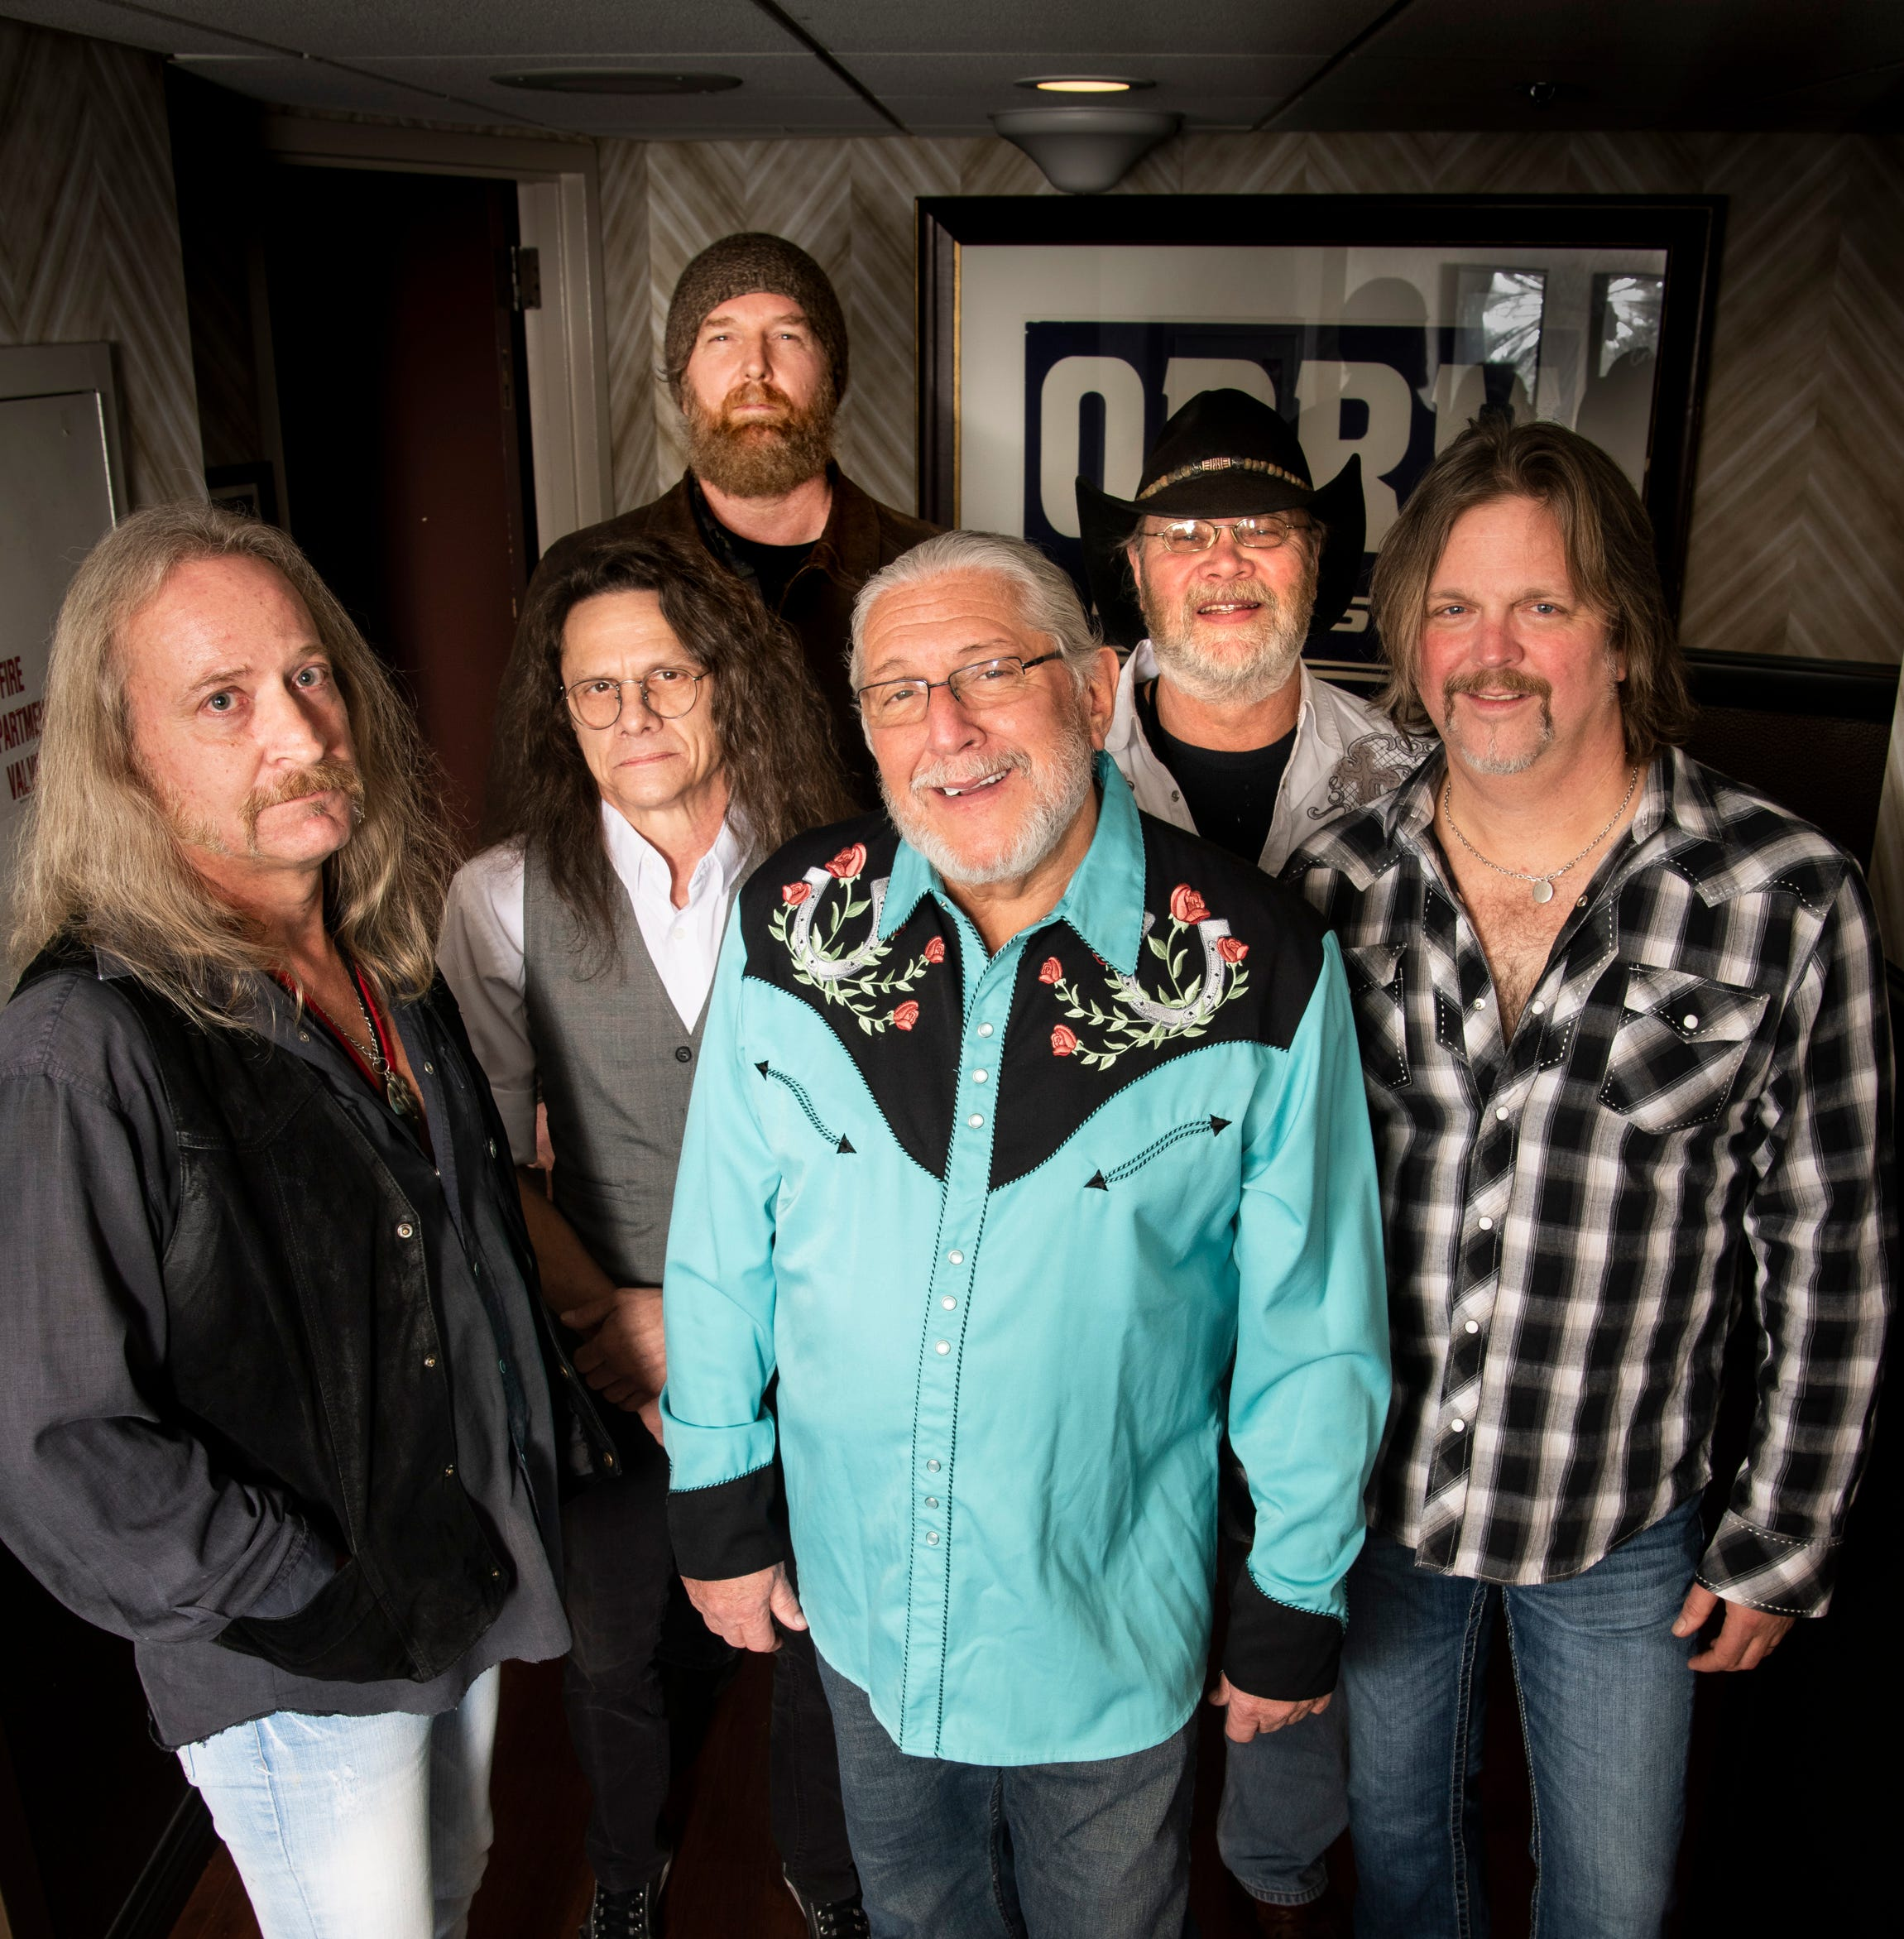 'Can't You See': Marshall Tucker Band celebrates 45-plus years of hits, memories